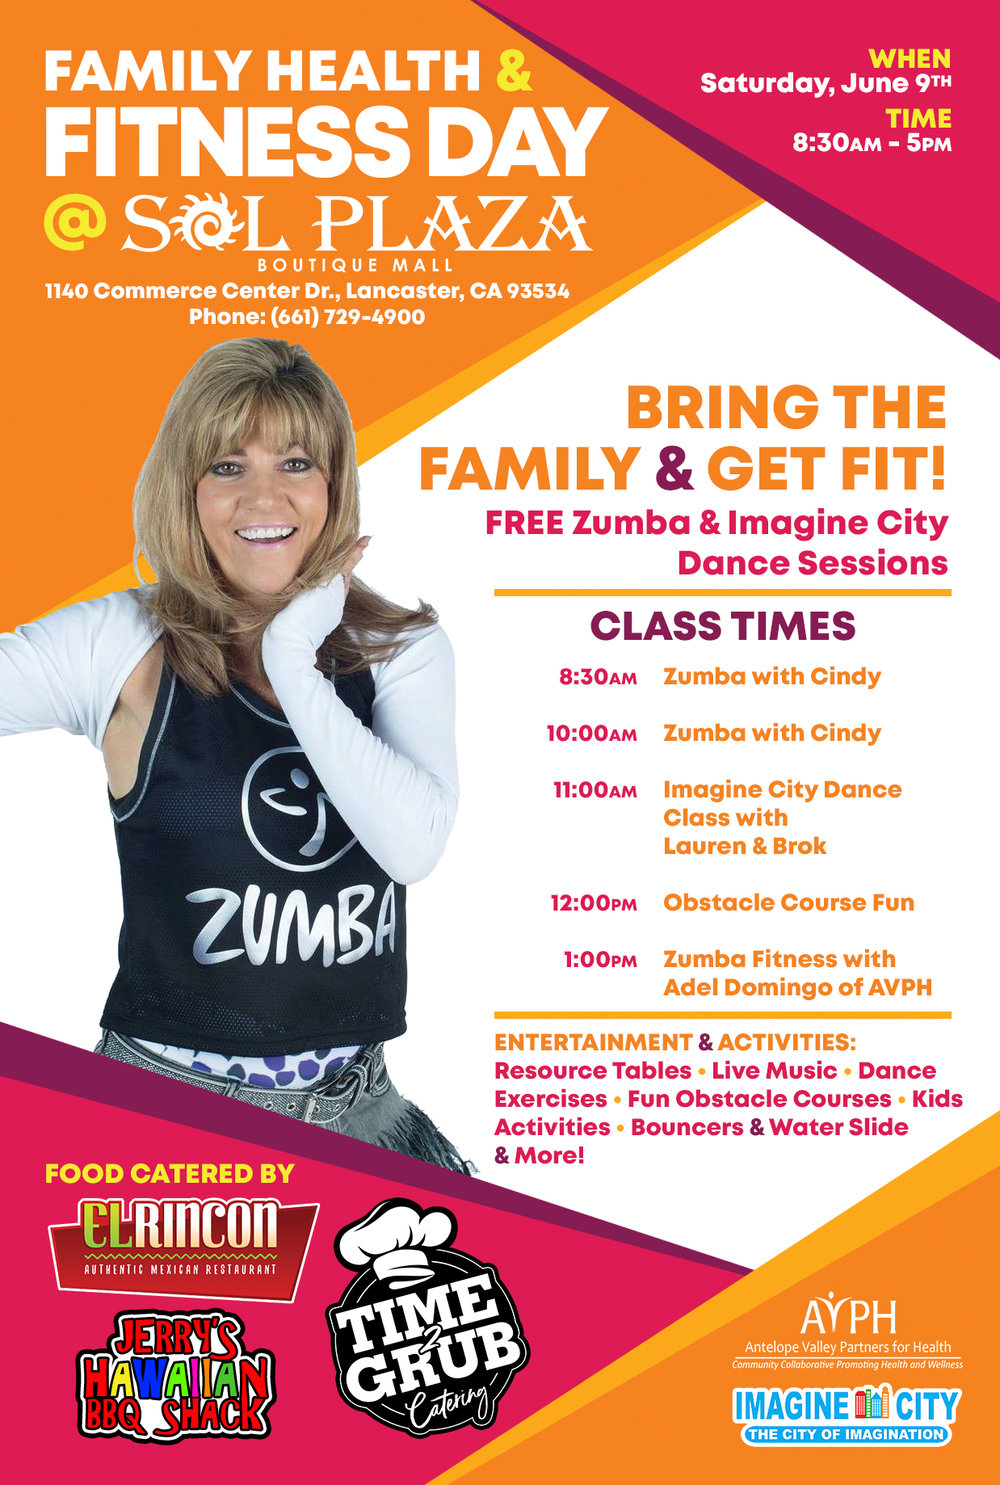 Sol-Plaza-Family-Health-and-Fitness-Day-Flyer-Revised.jpg